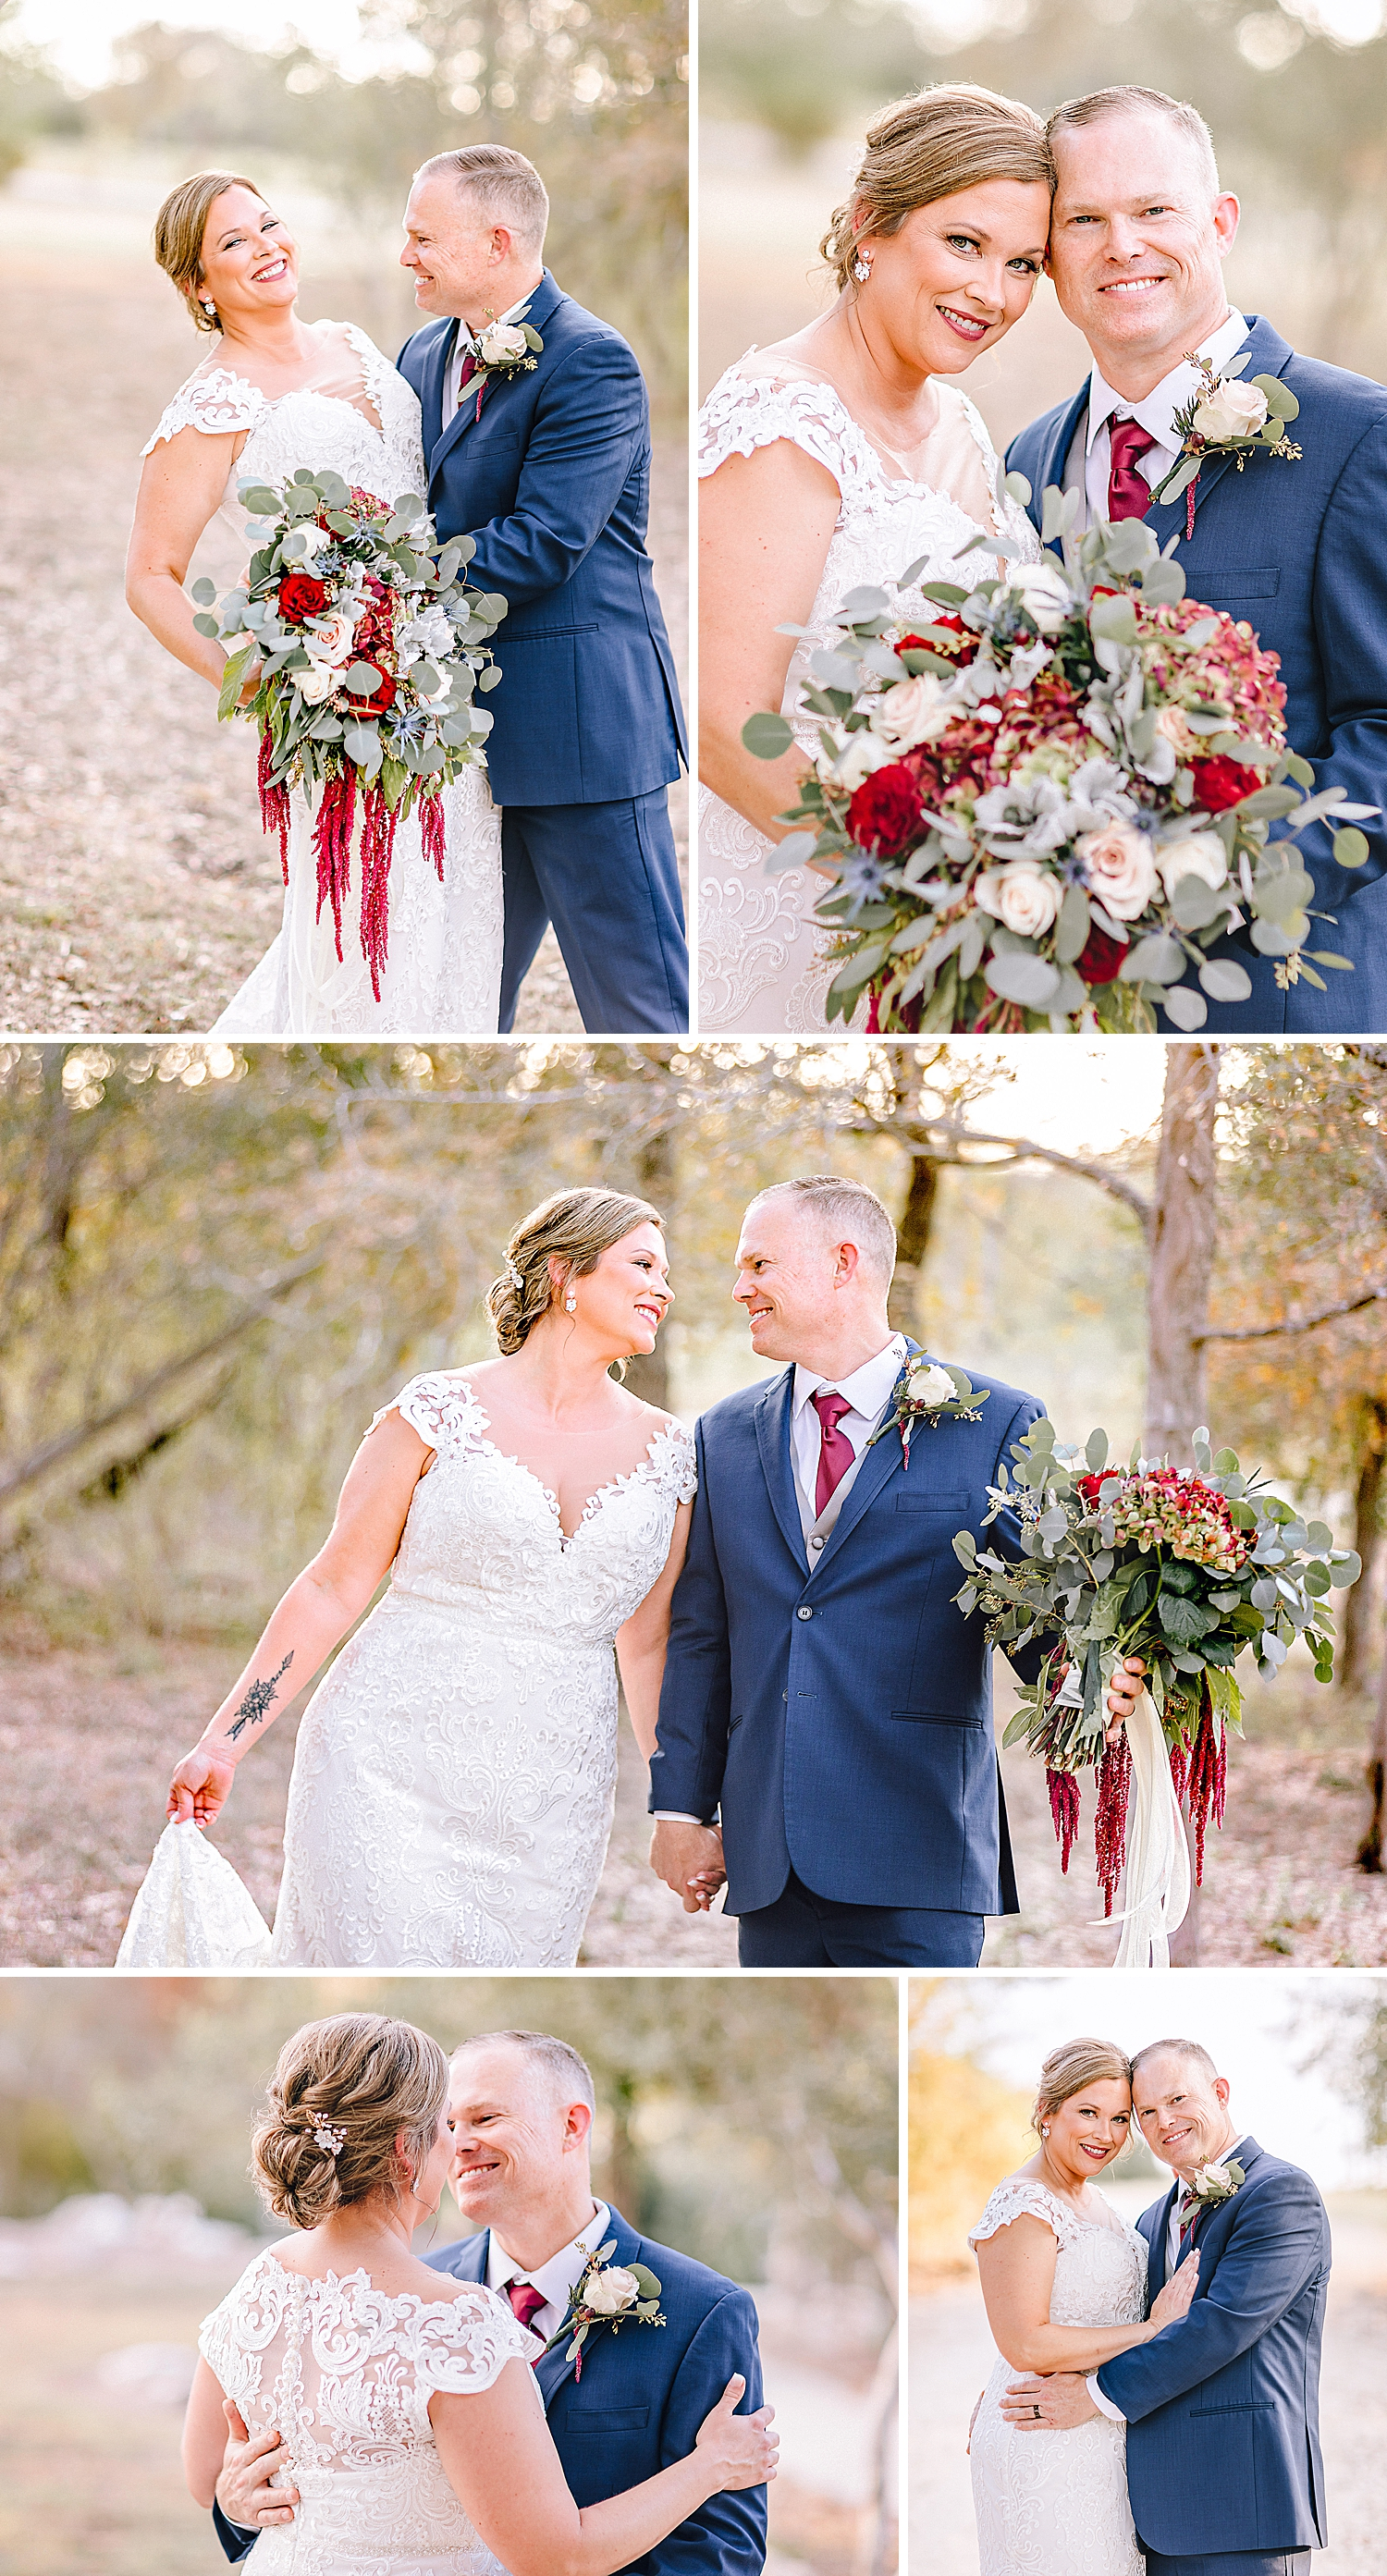 Geronimo-Oaks-Wedding-Venue-Seguin-Texas-Elegant-Navy-Burgundy-Wedding-Carly-Barton-Photography_0053.jpg